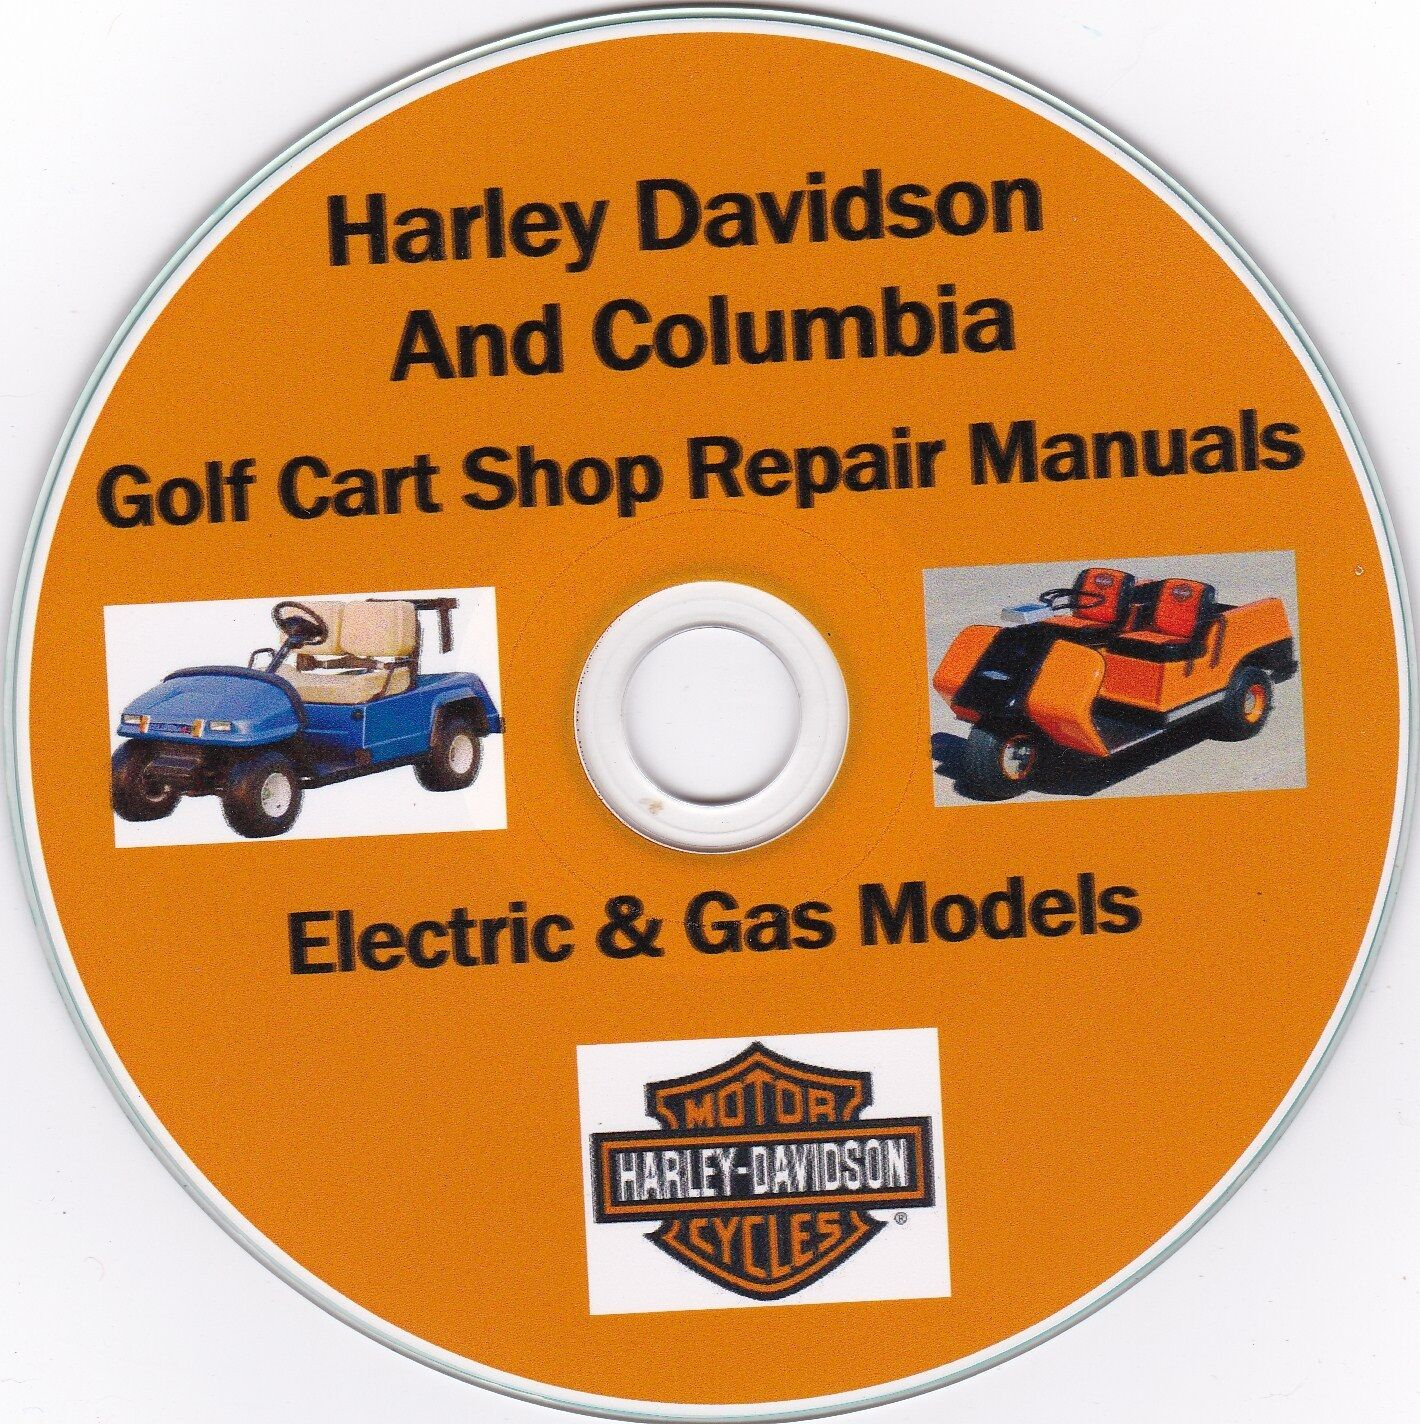 HARLEY DAVIDSON & Columbia -Golf Cart 1963-2003 - FACTORY SHOP ... on simple harley wiring diagram, harley motorcycle engine diagram, electric fuel pump wiring diagram, harley 3 wheel golf carts, ski-doo engine diagram, golf cart fuel pump diagram, golf cart wiring diagram, 2 stroke engine wire diagram, harley golf cart engine oil, harley-davidson parts diagram, ezgo gas wiring diagram, ezgo golf cart motor diagram, harley sportster engine diagram, car engine diagram, ez go cart wiring diagram, harley engine drawings,